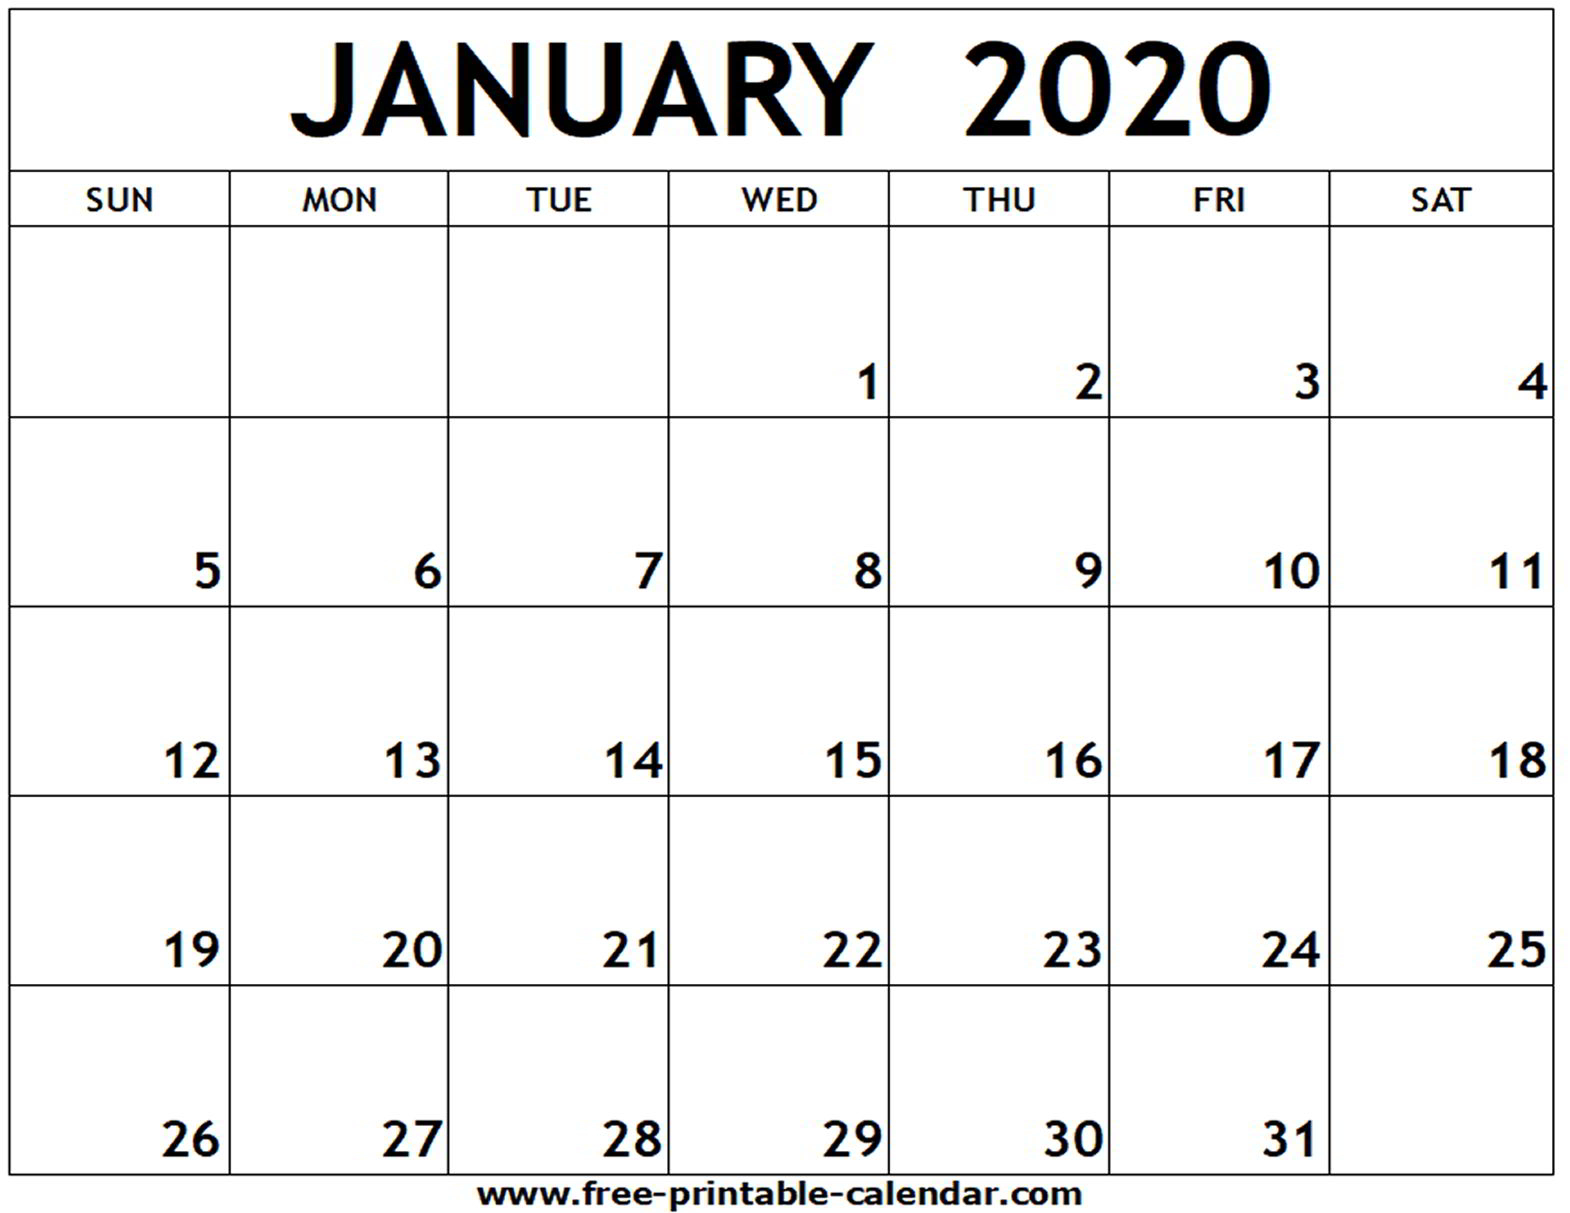 Free Printable Calendar 2020 Template - Togo.wpart.co